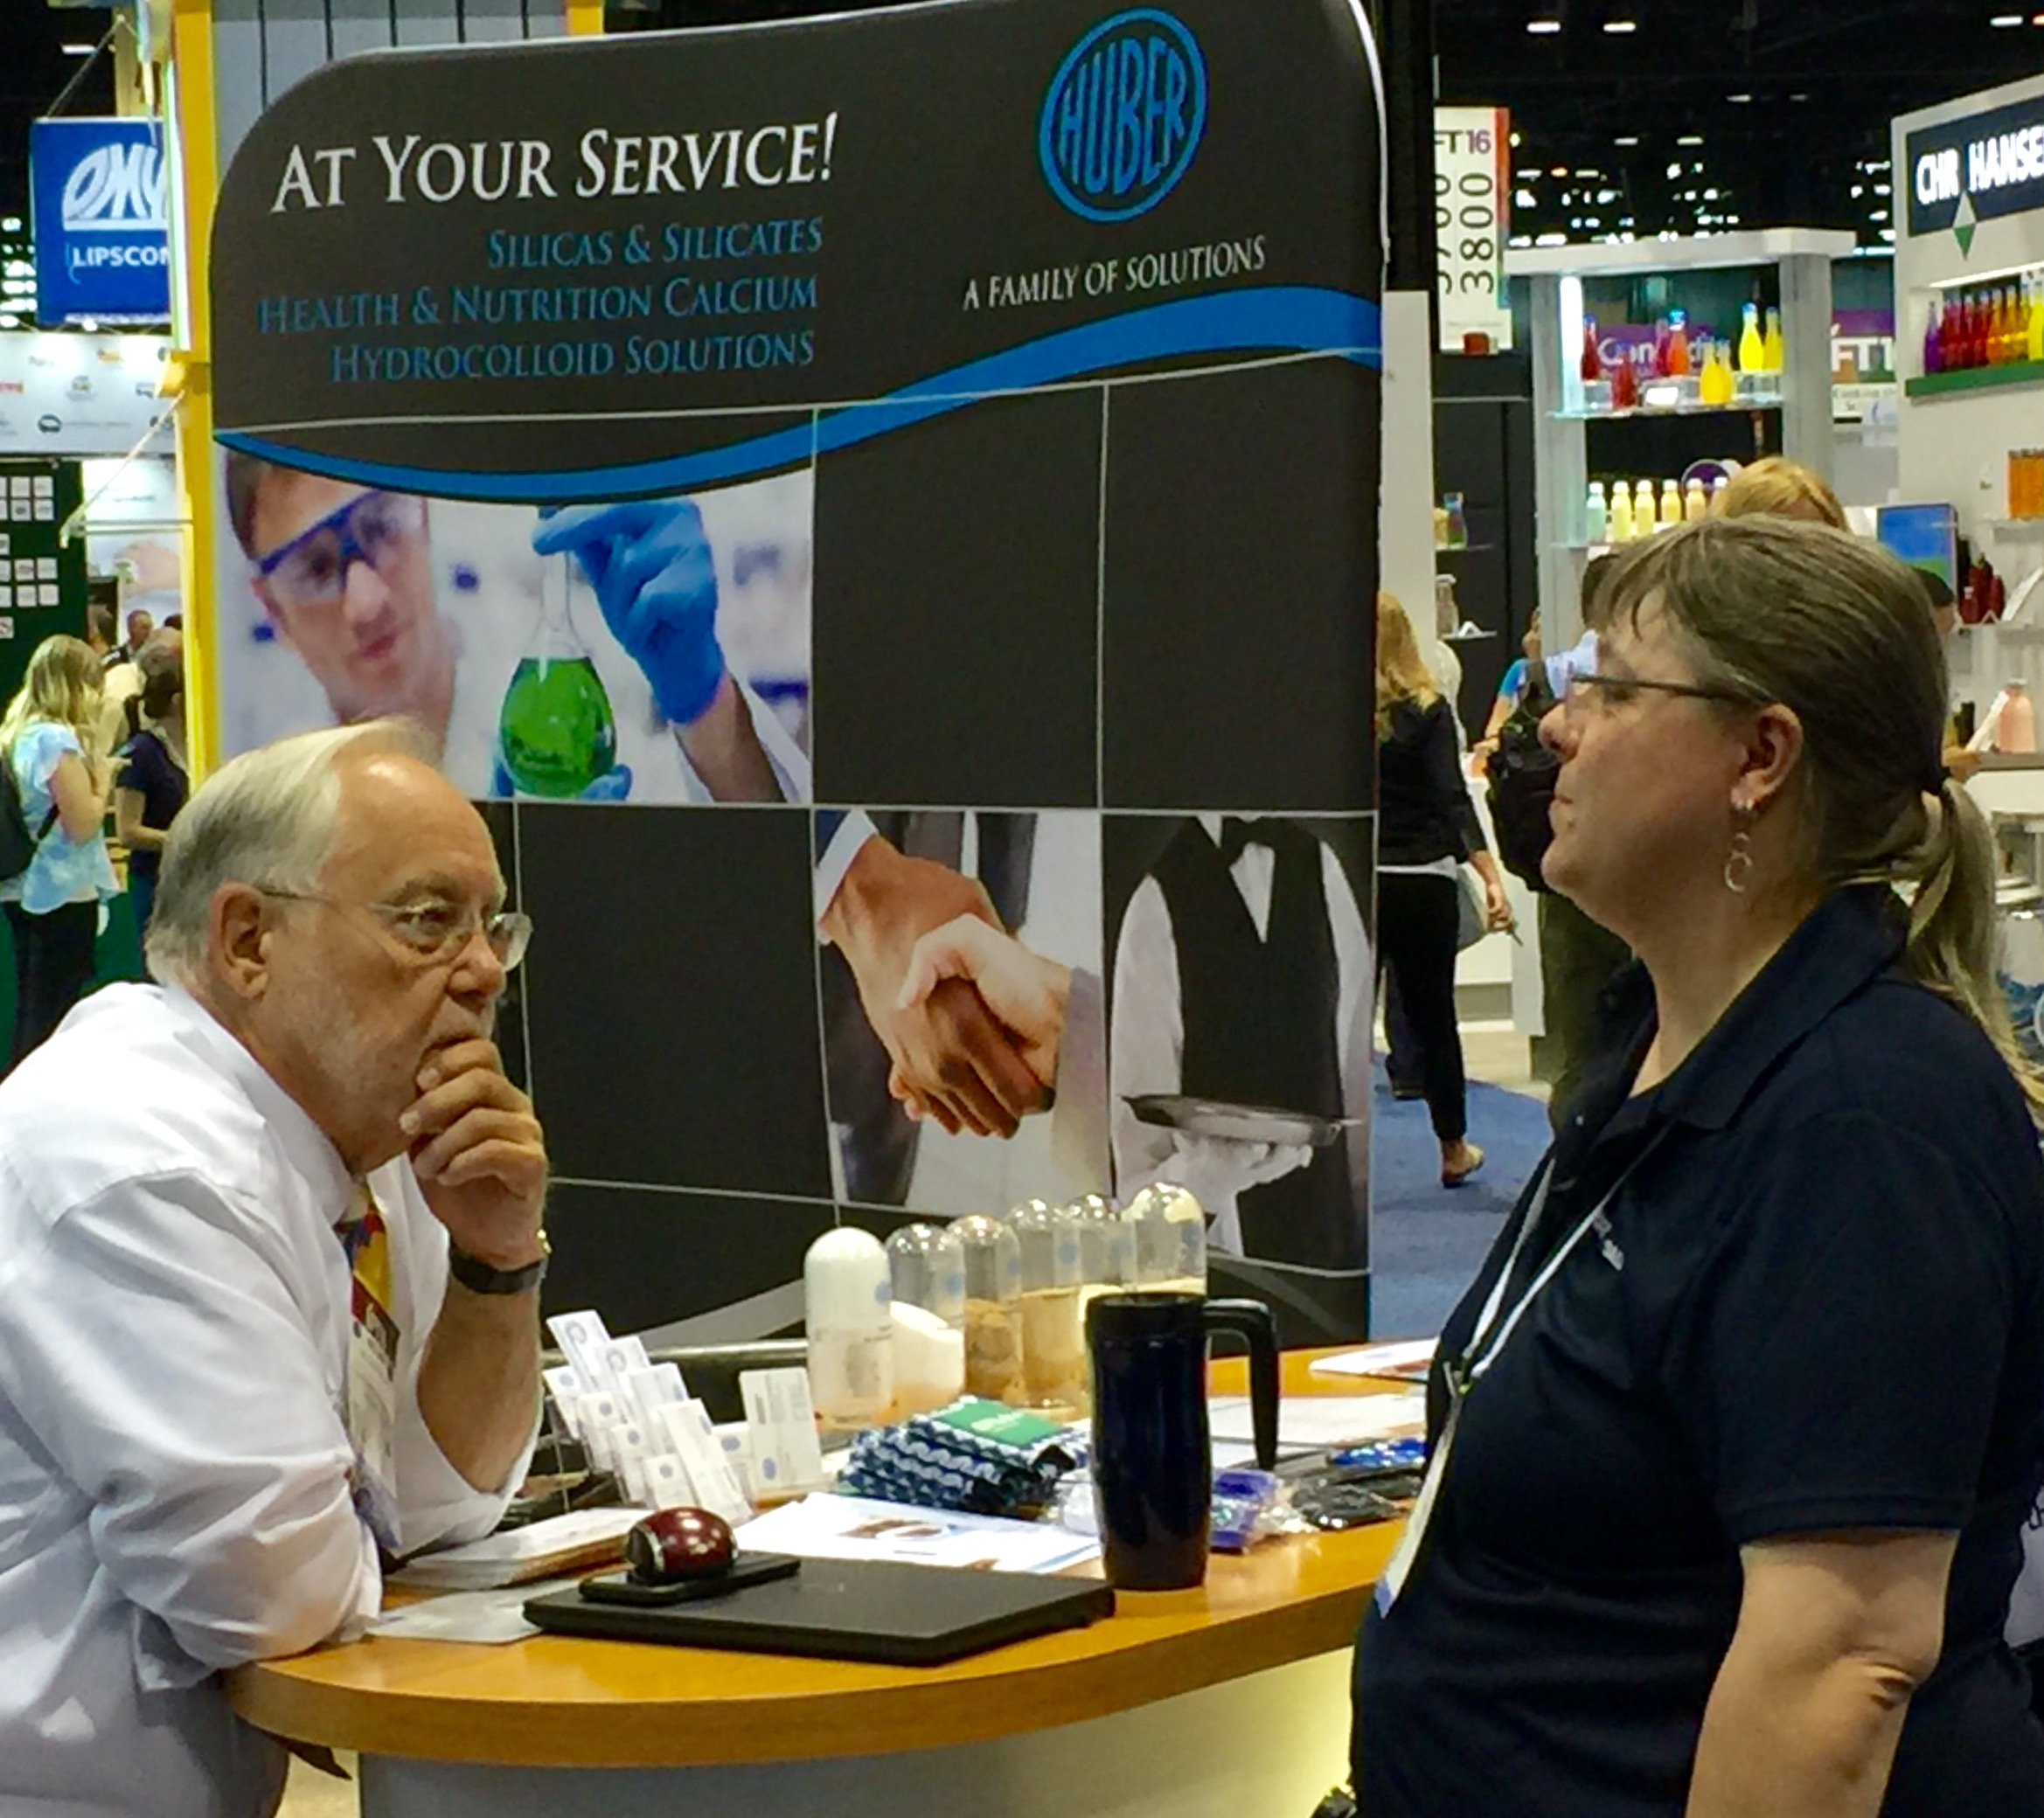 Huber's Sr. Technical Service Representative Nolan Phillps (left) fields questions about Huber's Silicas and Silicates at IFT2016.